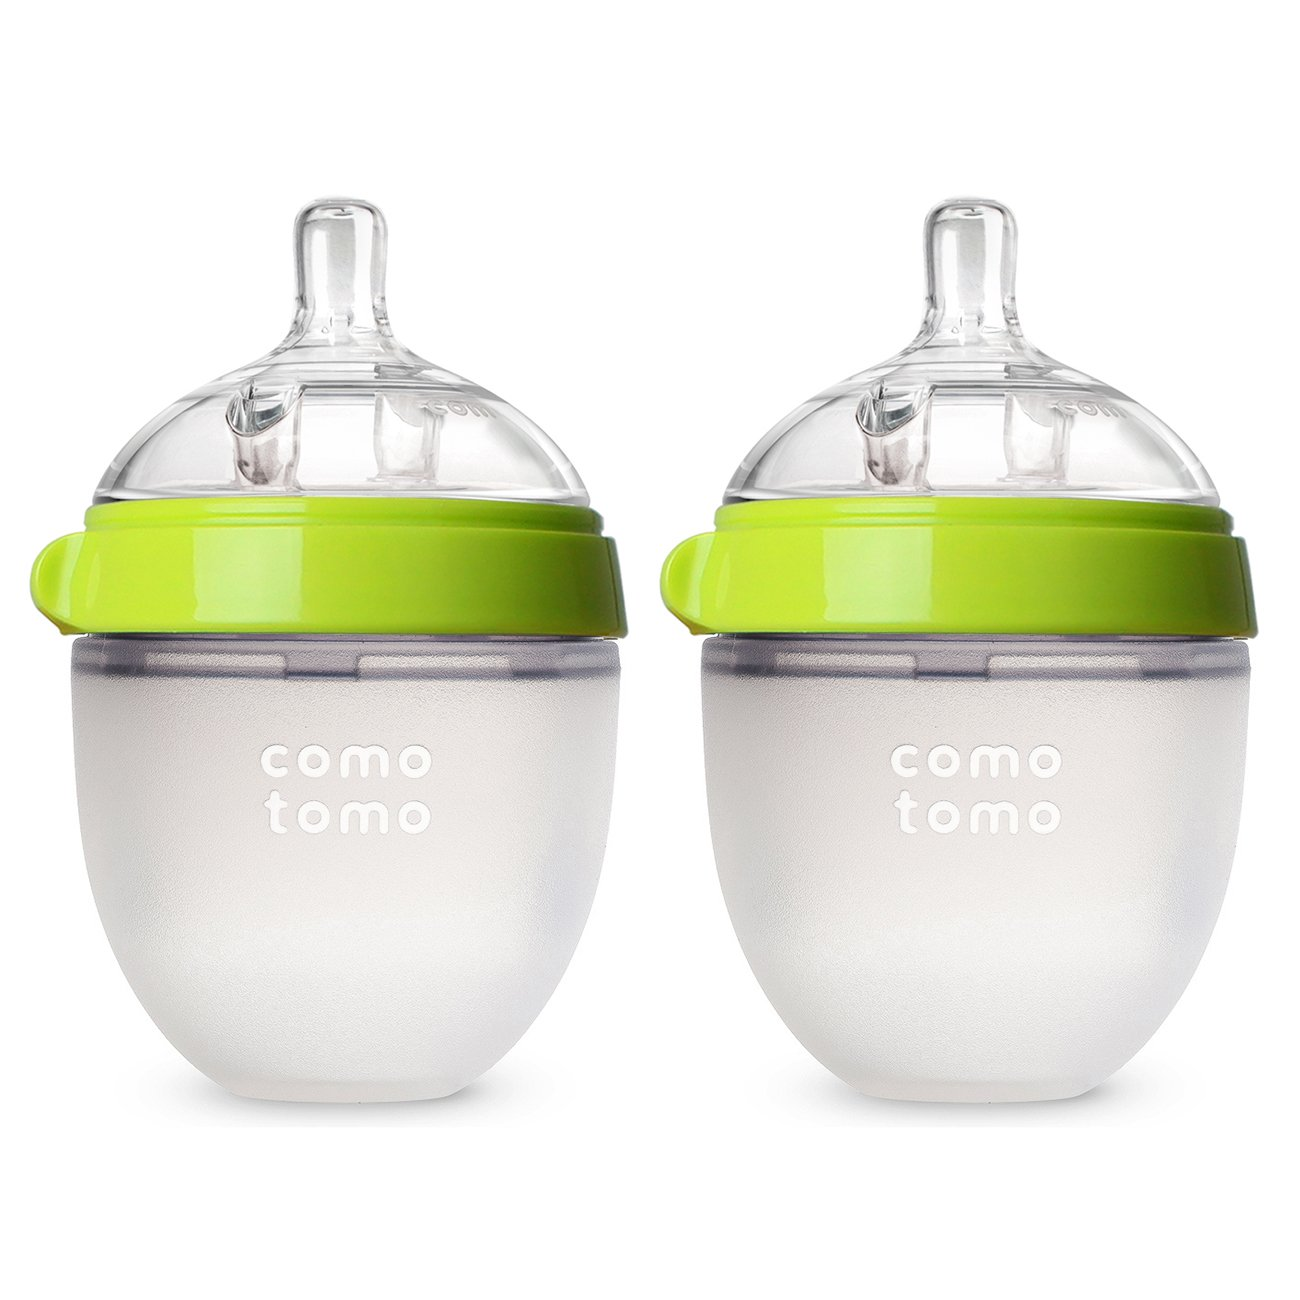 Comotomo Baby Bottle, Green, 5 Ounce (2 Count) by Comotomo (Image #1)